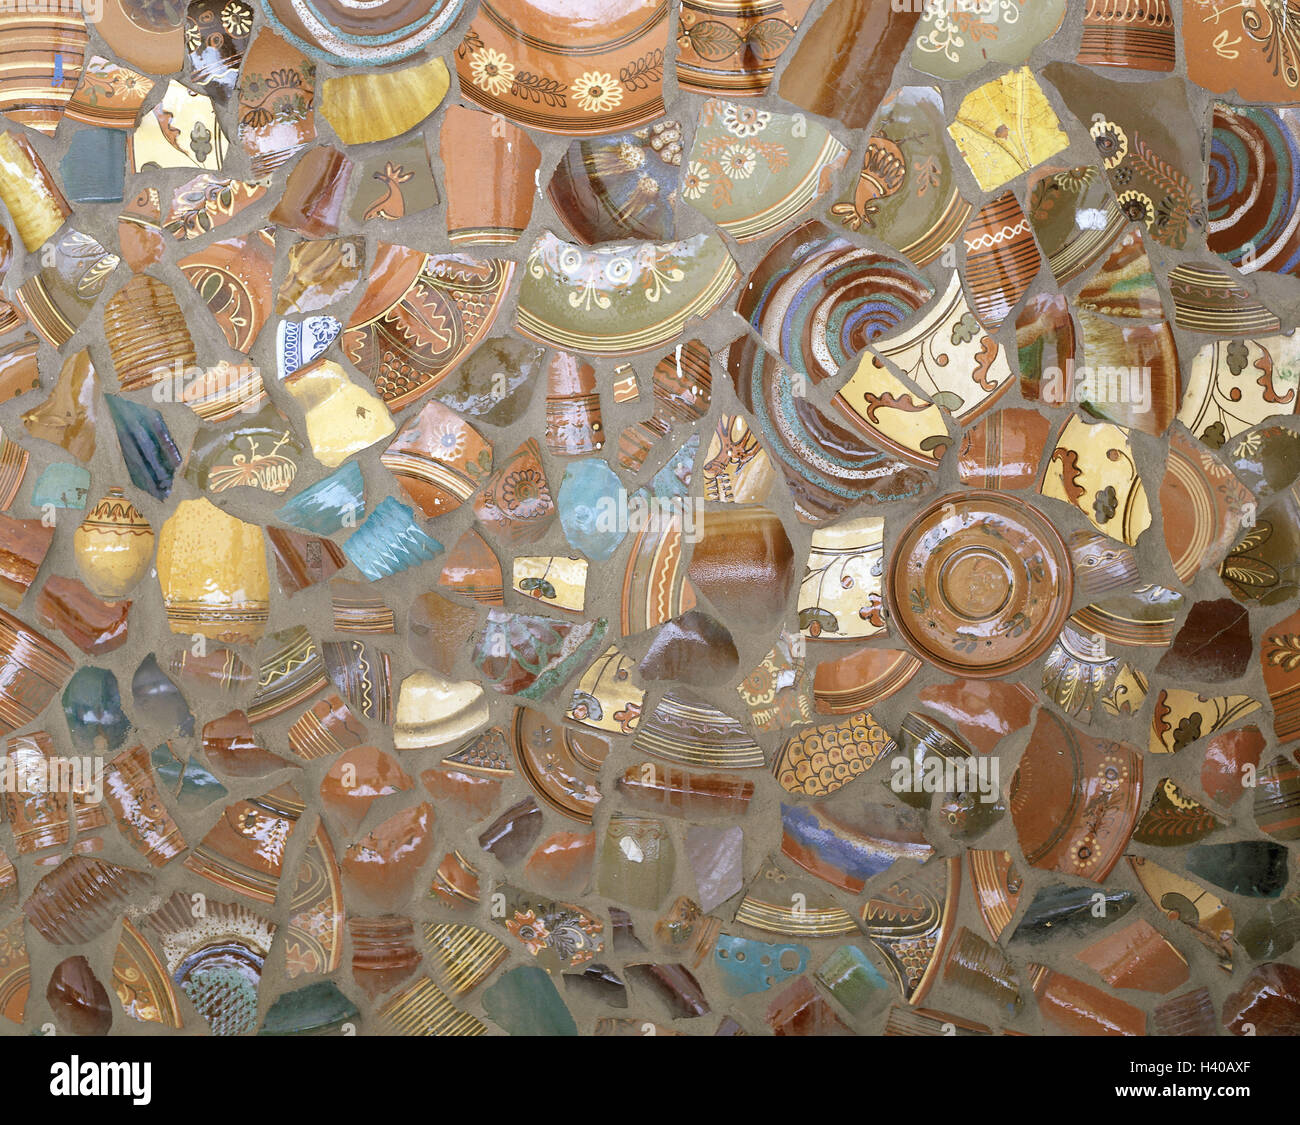 More poorly, ceramics shards, close up, wall, ceramics, shards, glazed, fragments, mosaic, art, idea, product photography, - Stock Image